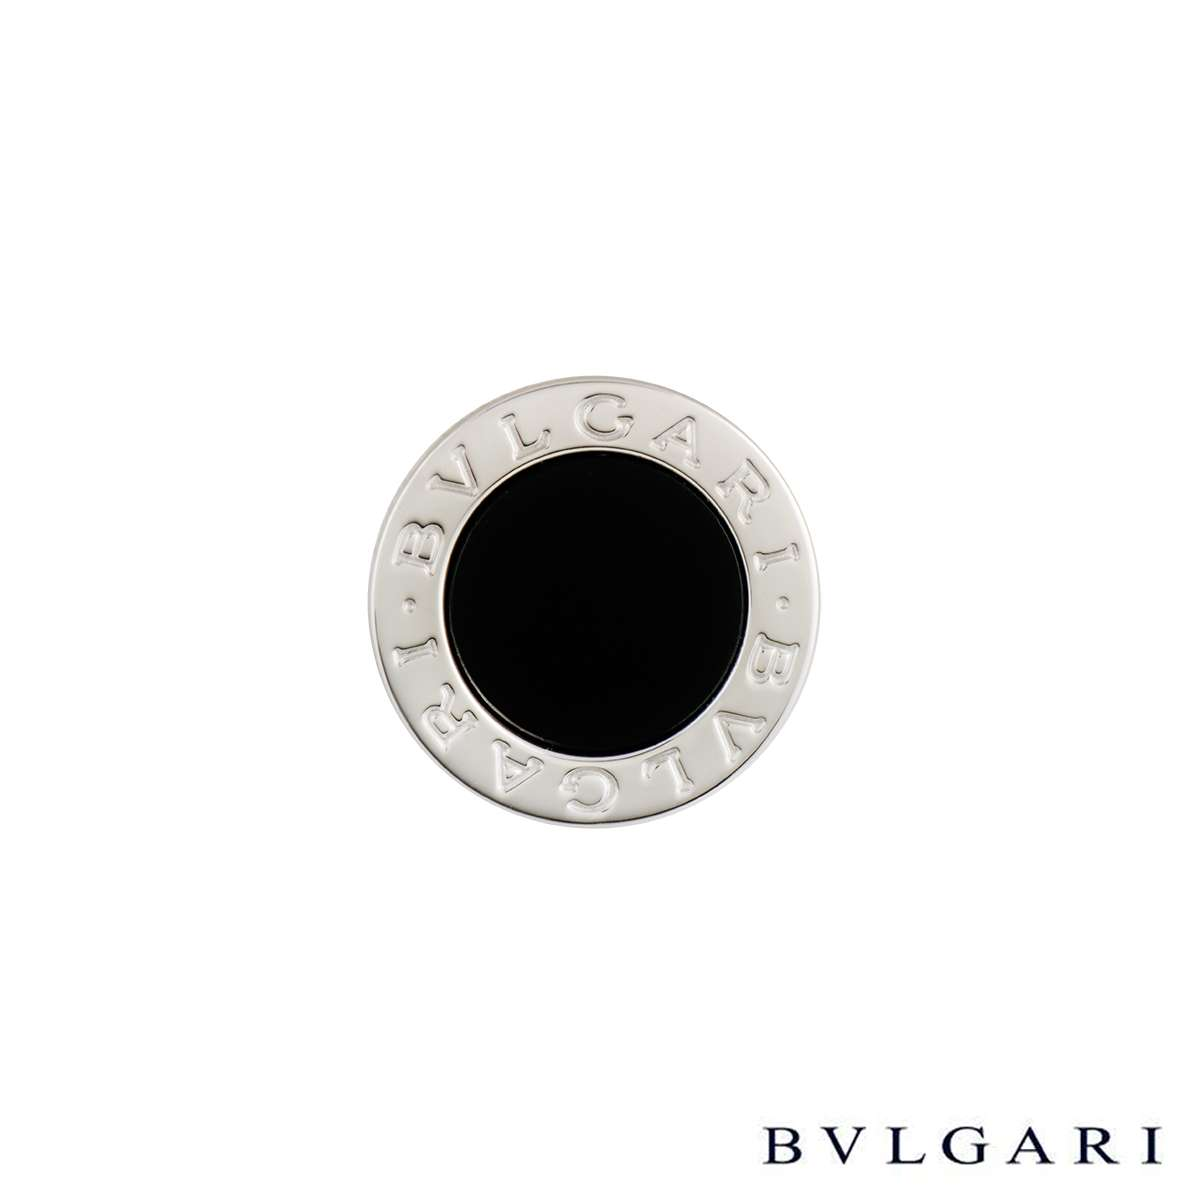 Bvlgari Bvlgari White Gold & Onyx Ring